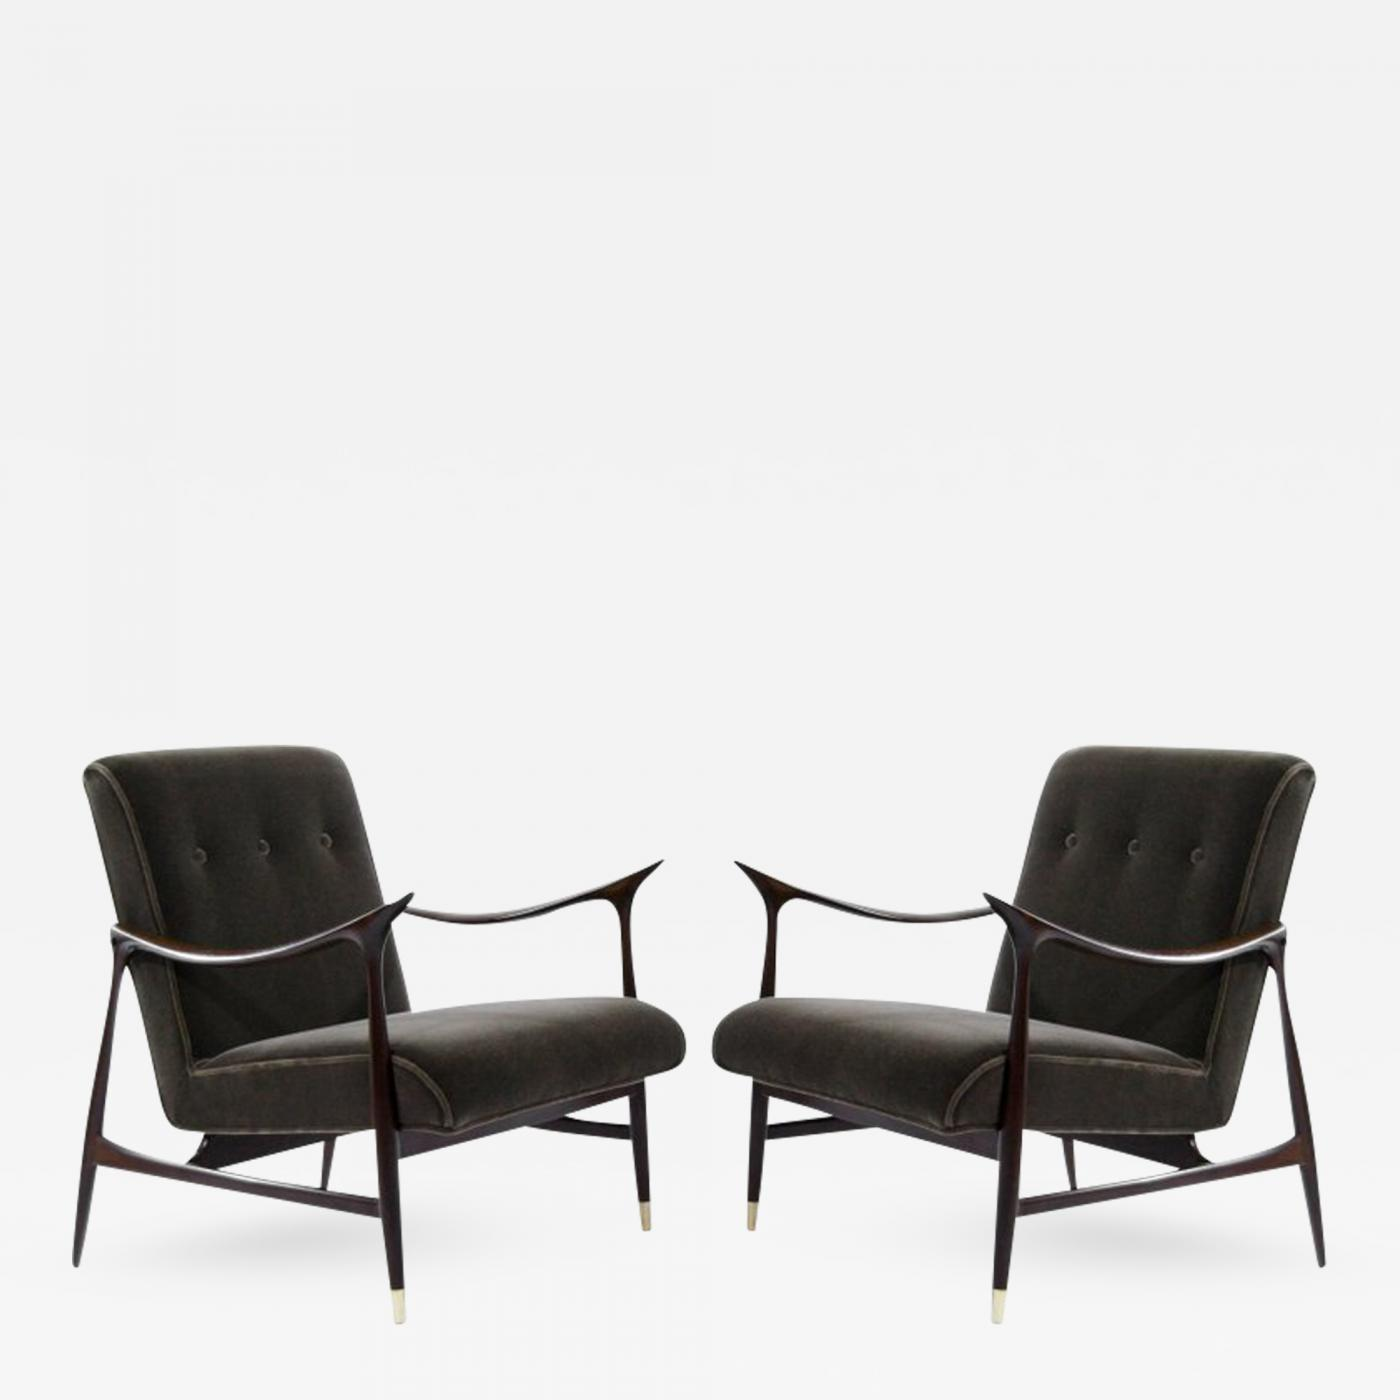 Outstanding Sculptural Brazilian Lounge Chairs In Mohair Ibusinesslaw Wood Chair Design Ideas Ibusinesslaworg